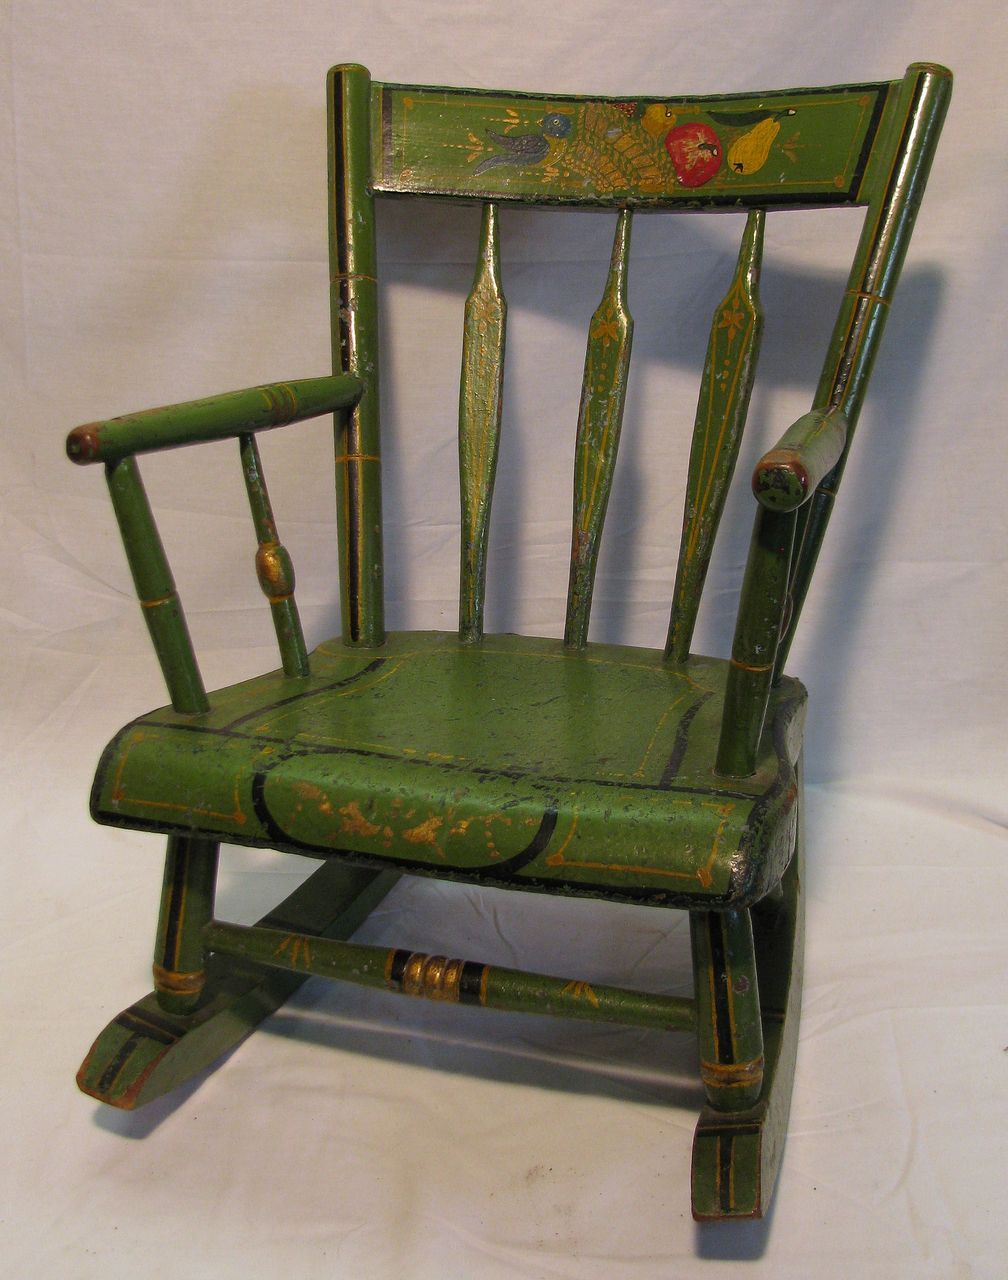 Antique Amish Green Folk Art Stenciled Child's Rocking Chair - Antique Amish Green Folk Art Stenciled Child's Rocking Chair